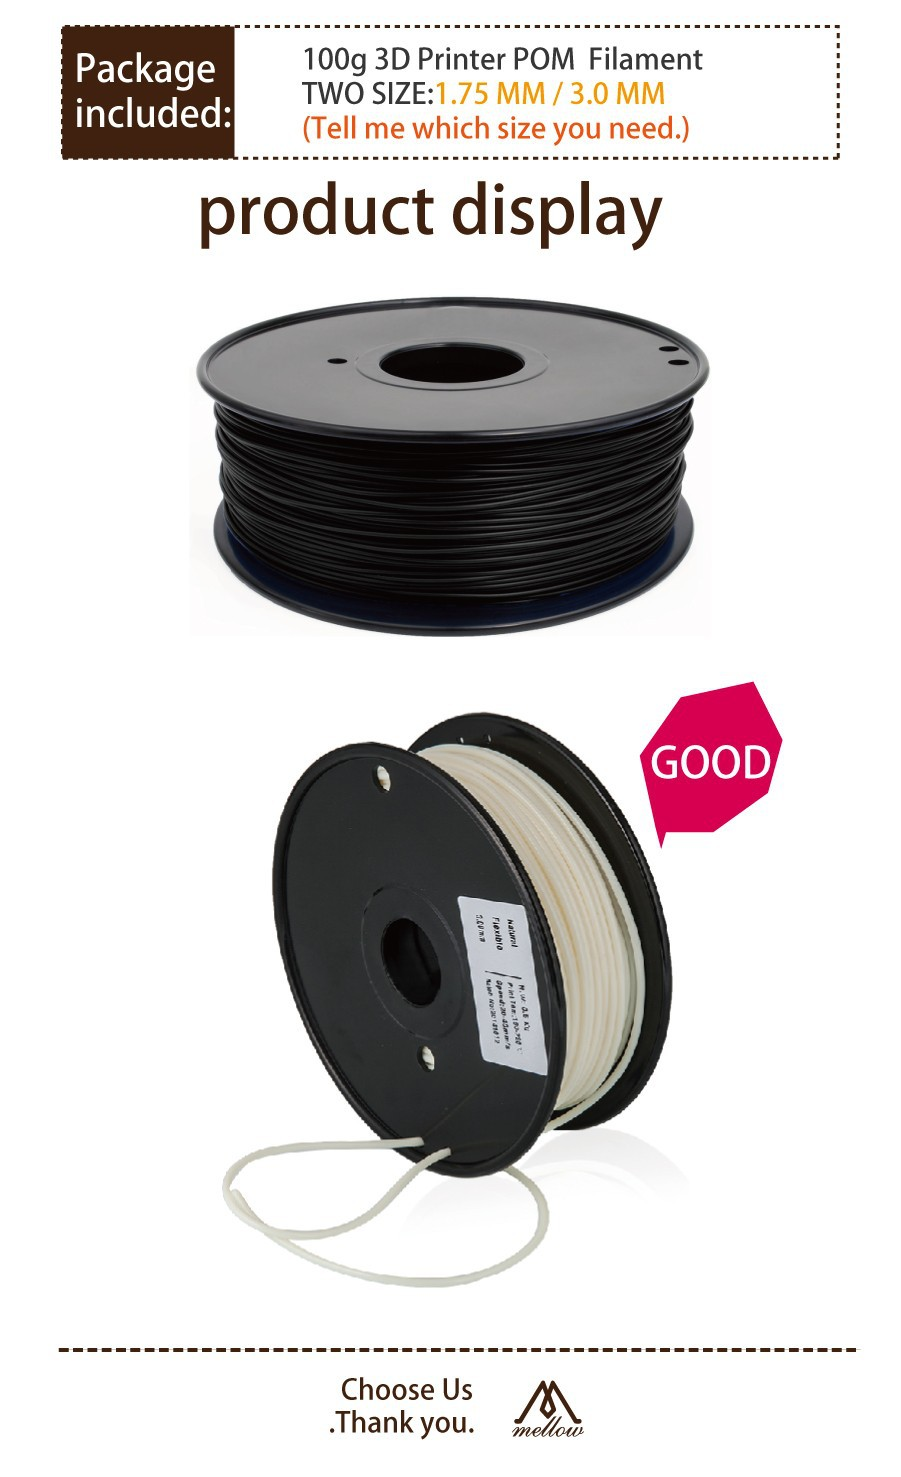 3D Printer Filament - POM 5